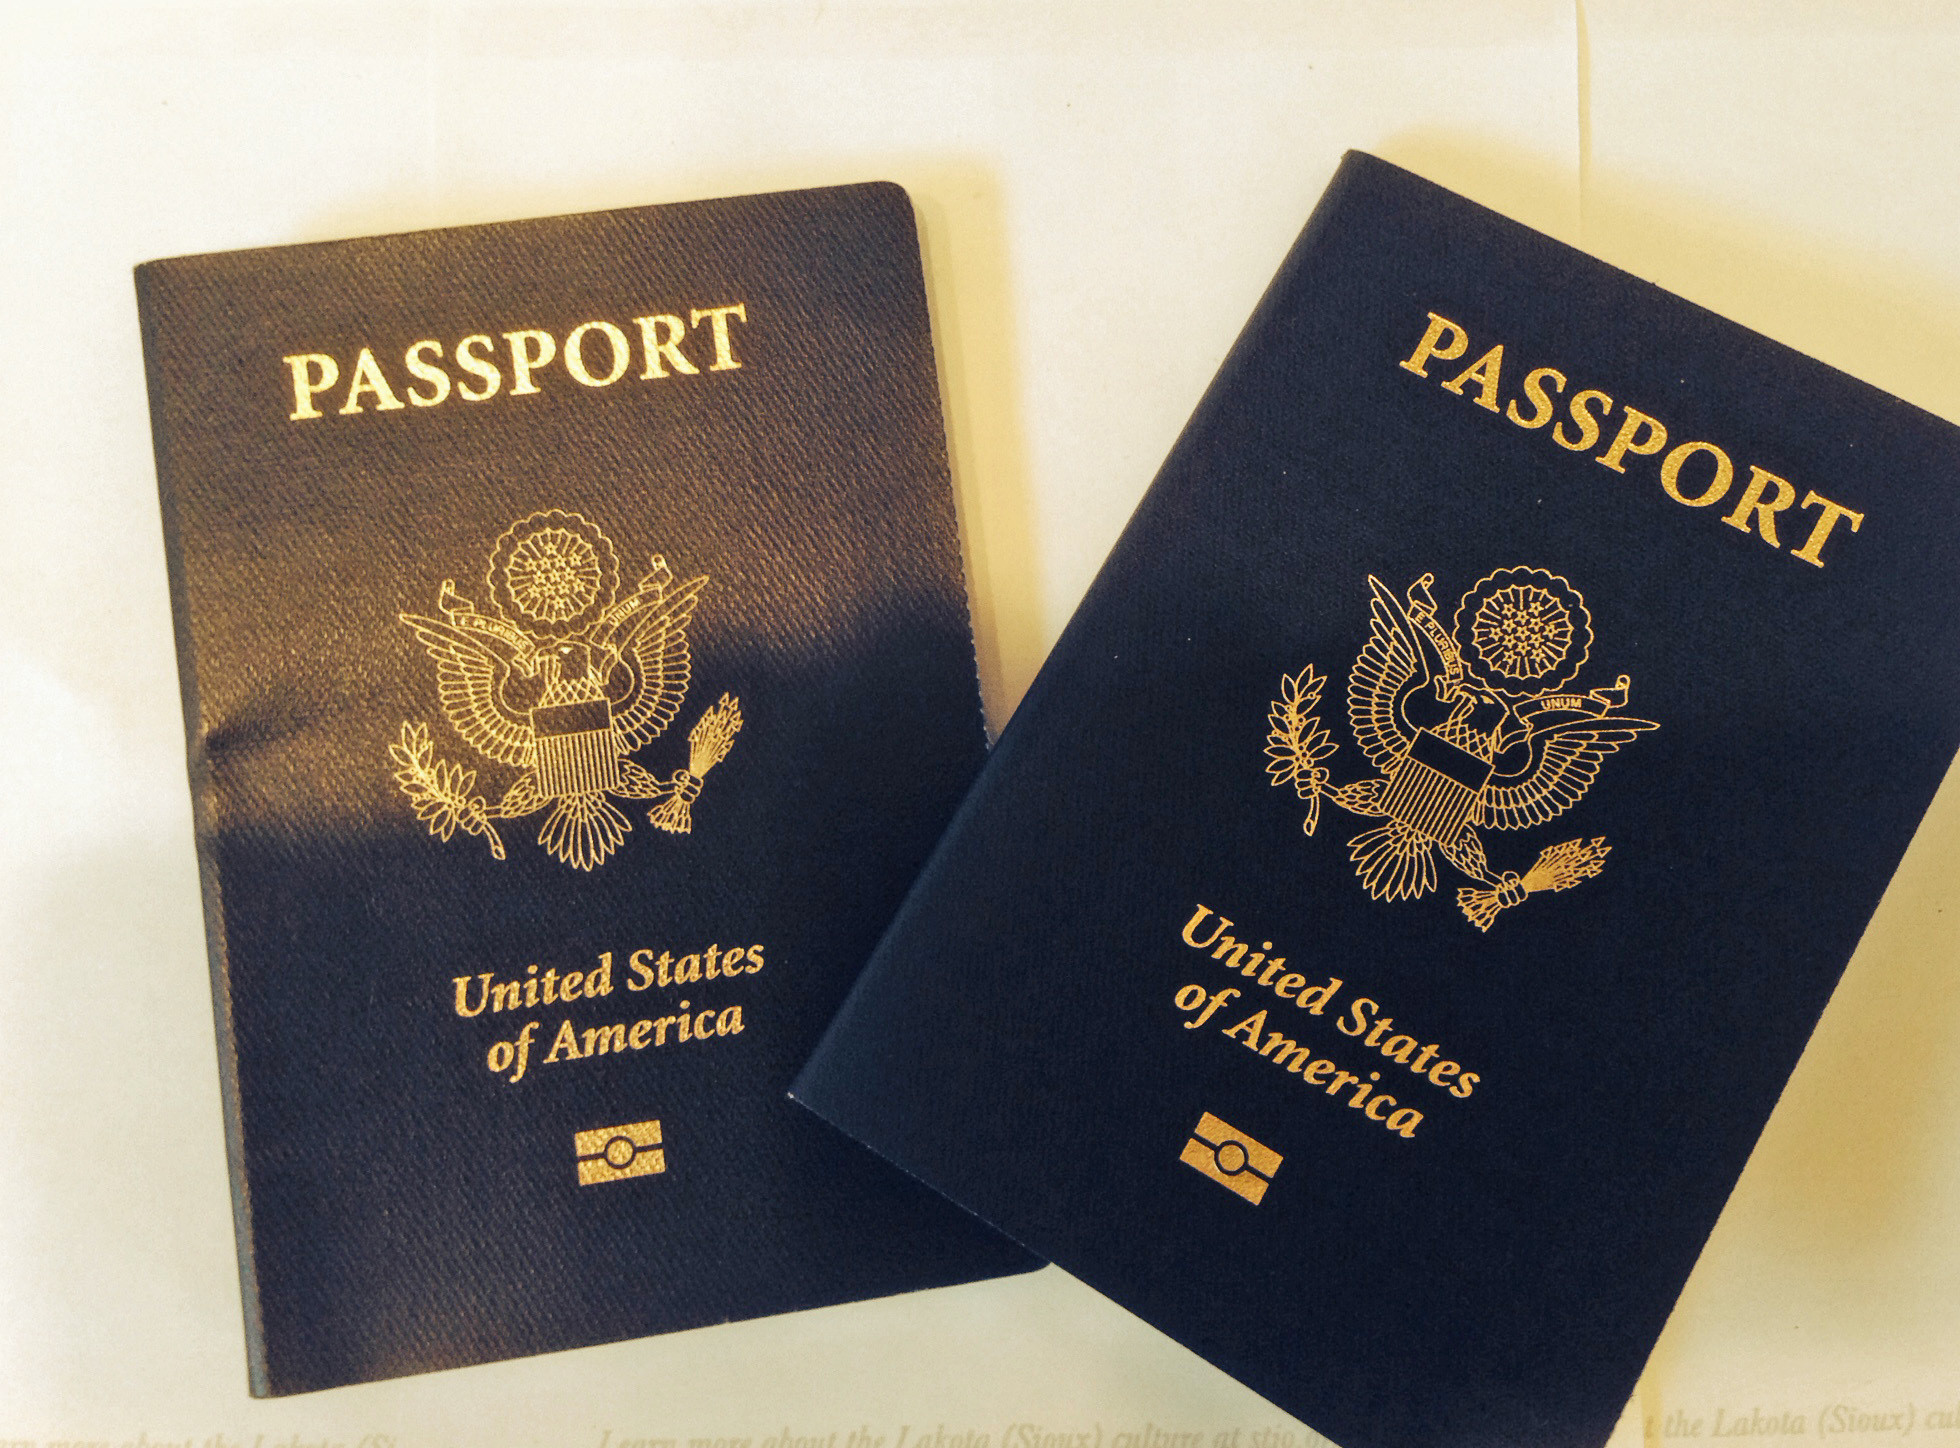 For National Passport Awareness month some info on year rule